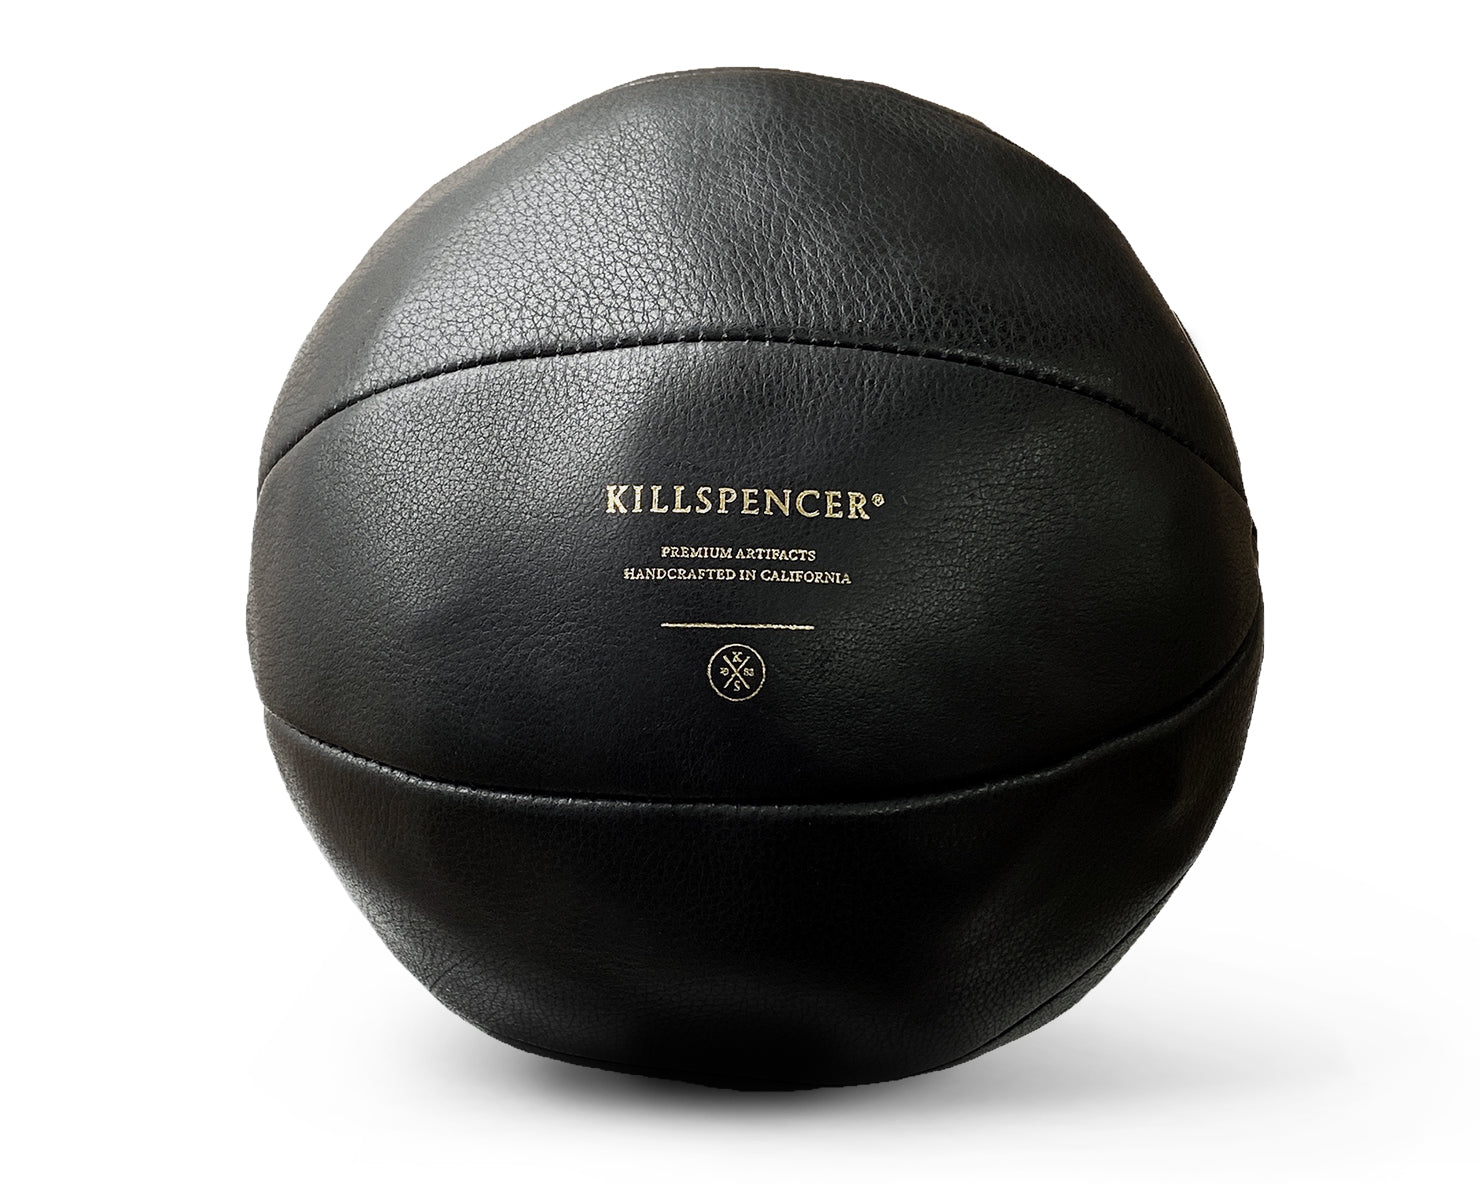 INDOOR MINI BASKETBALL | KILLSPENCER® - Plush Black Leather